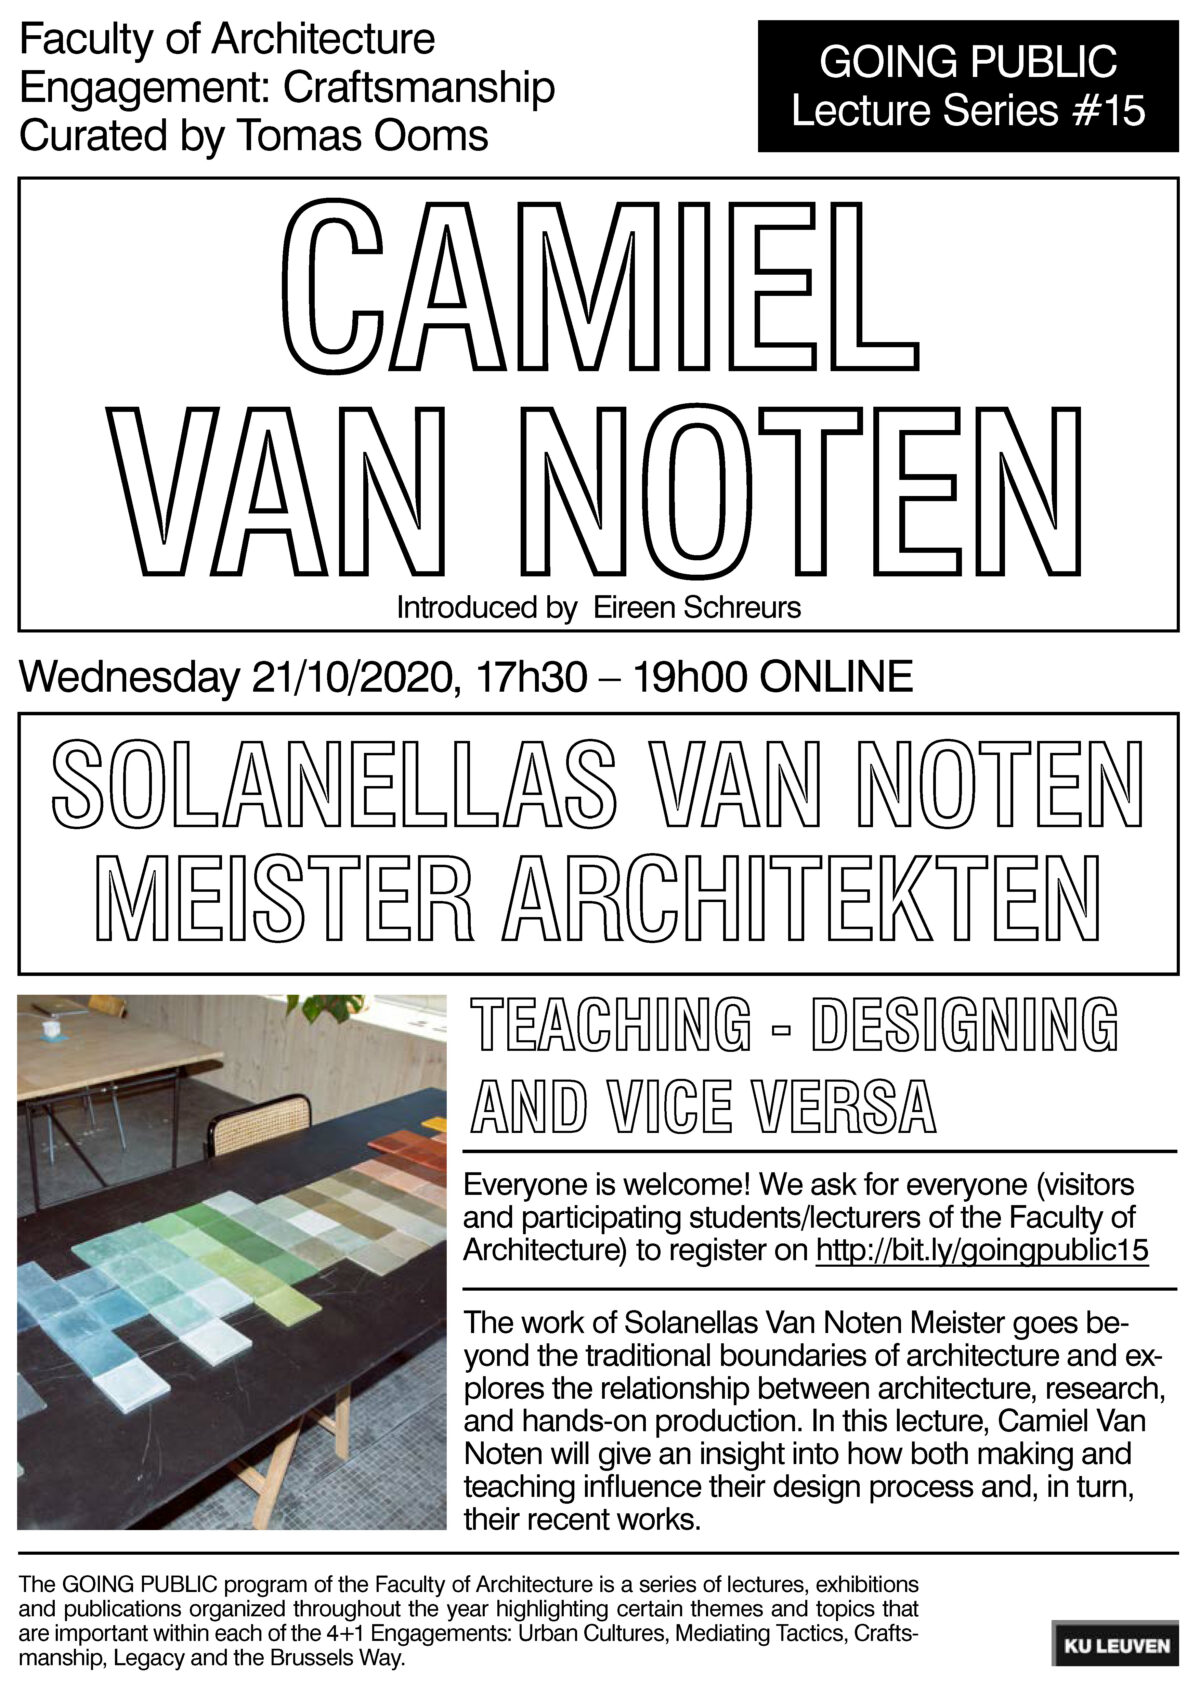 goingpublic15_camielvannoten_poster-004-analog